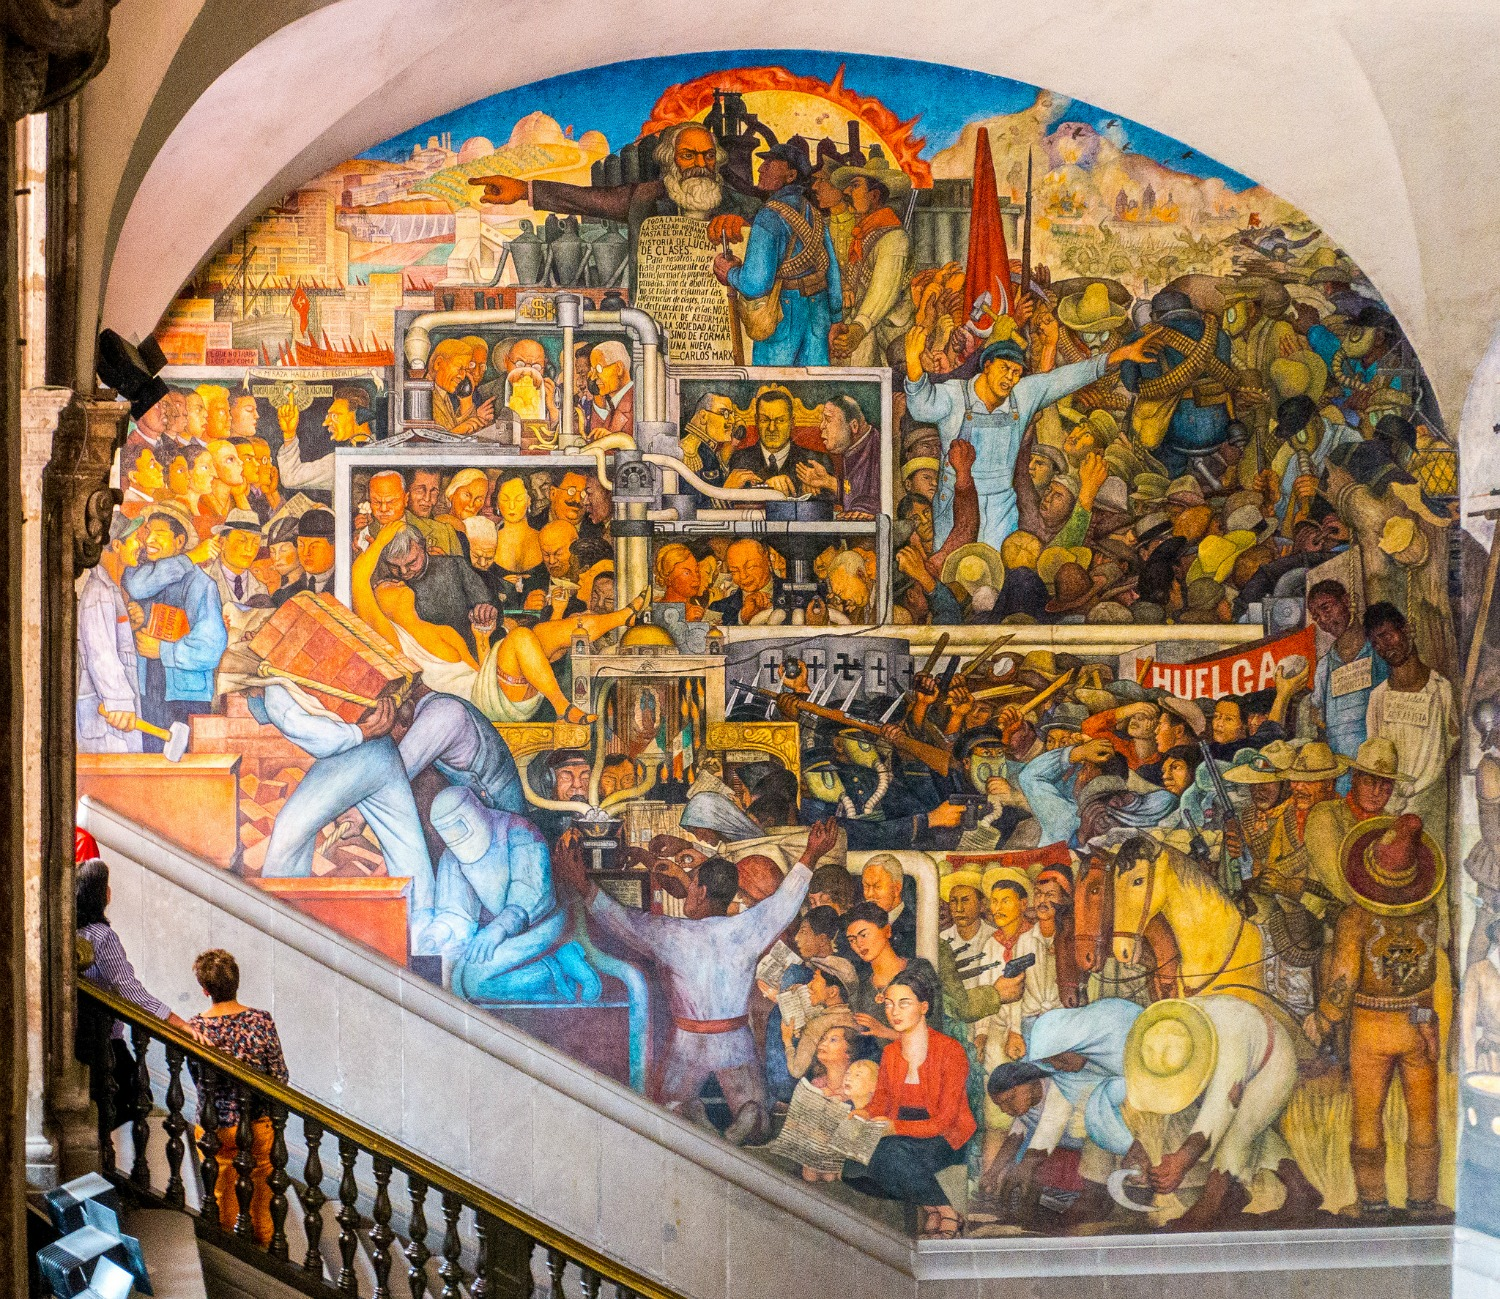 Arte Chicano Murals A Brief Overview Of Diego Rivera S Murals In San Francisco